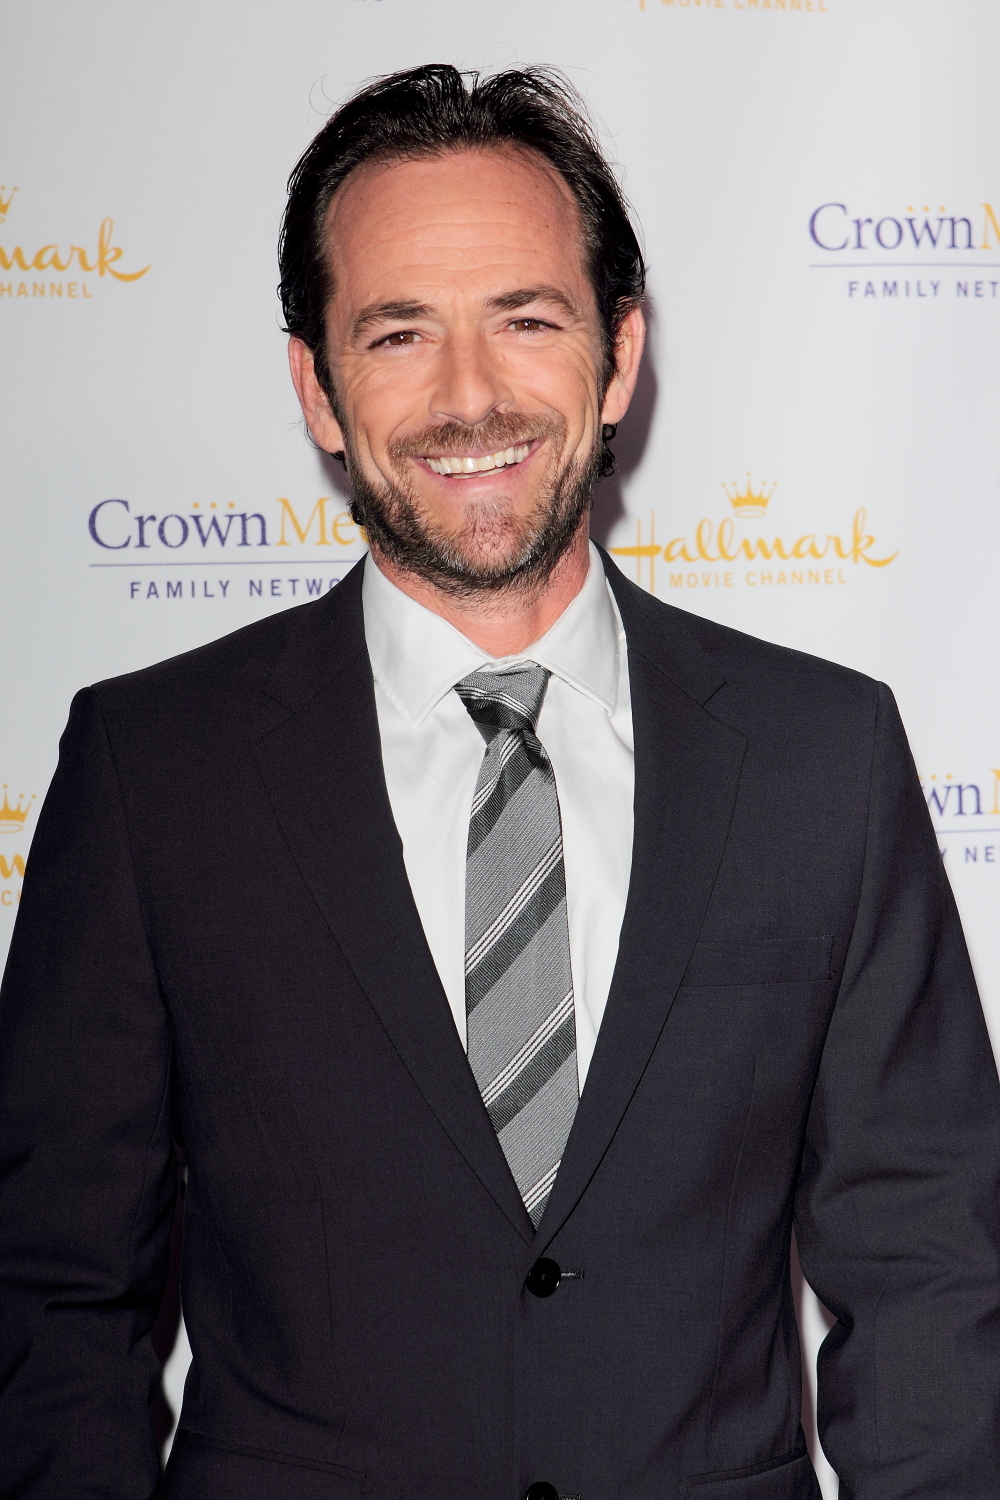 Actor Luke Perry Dead At 52 After Suffering Stroke | Black ...